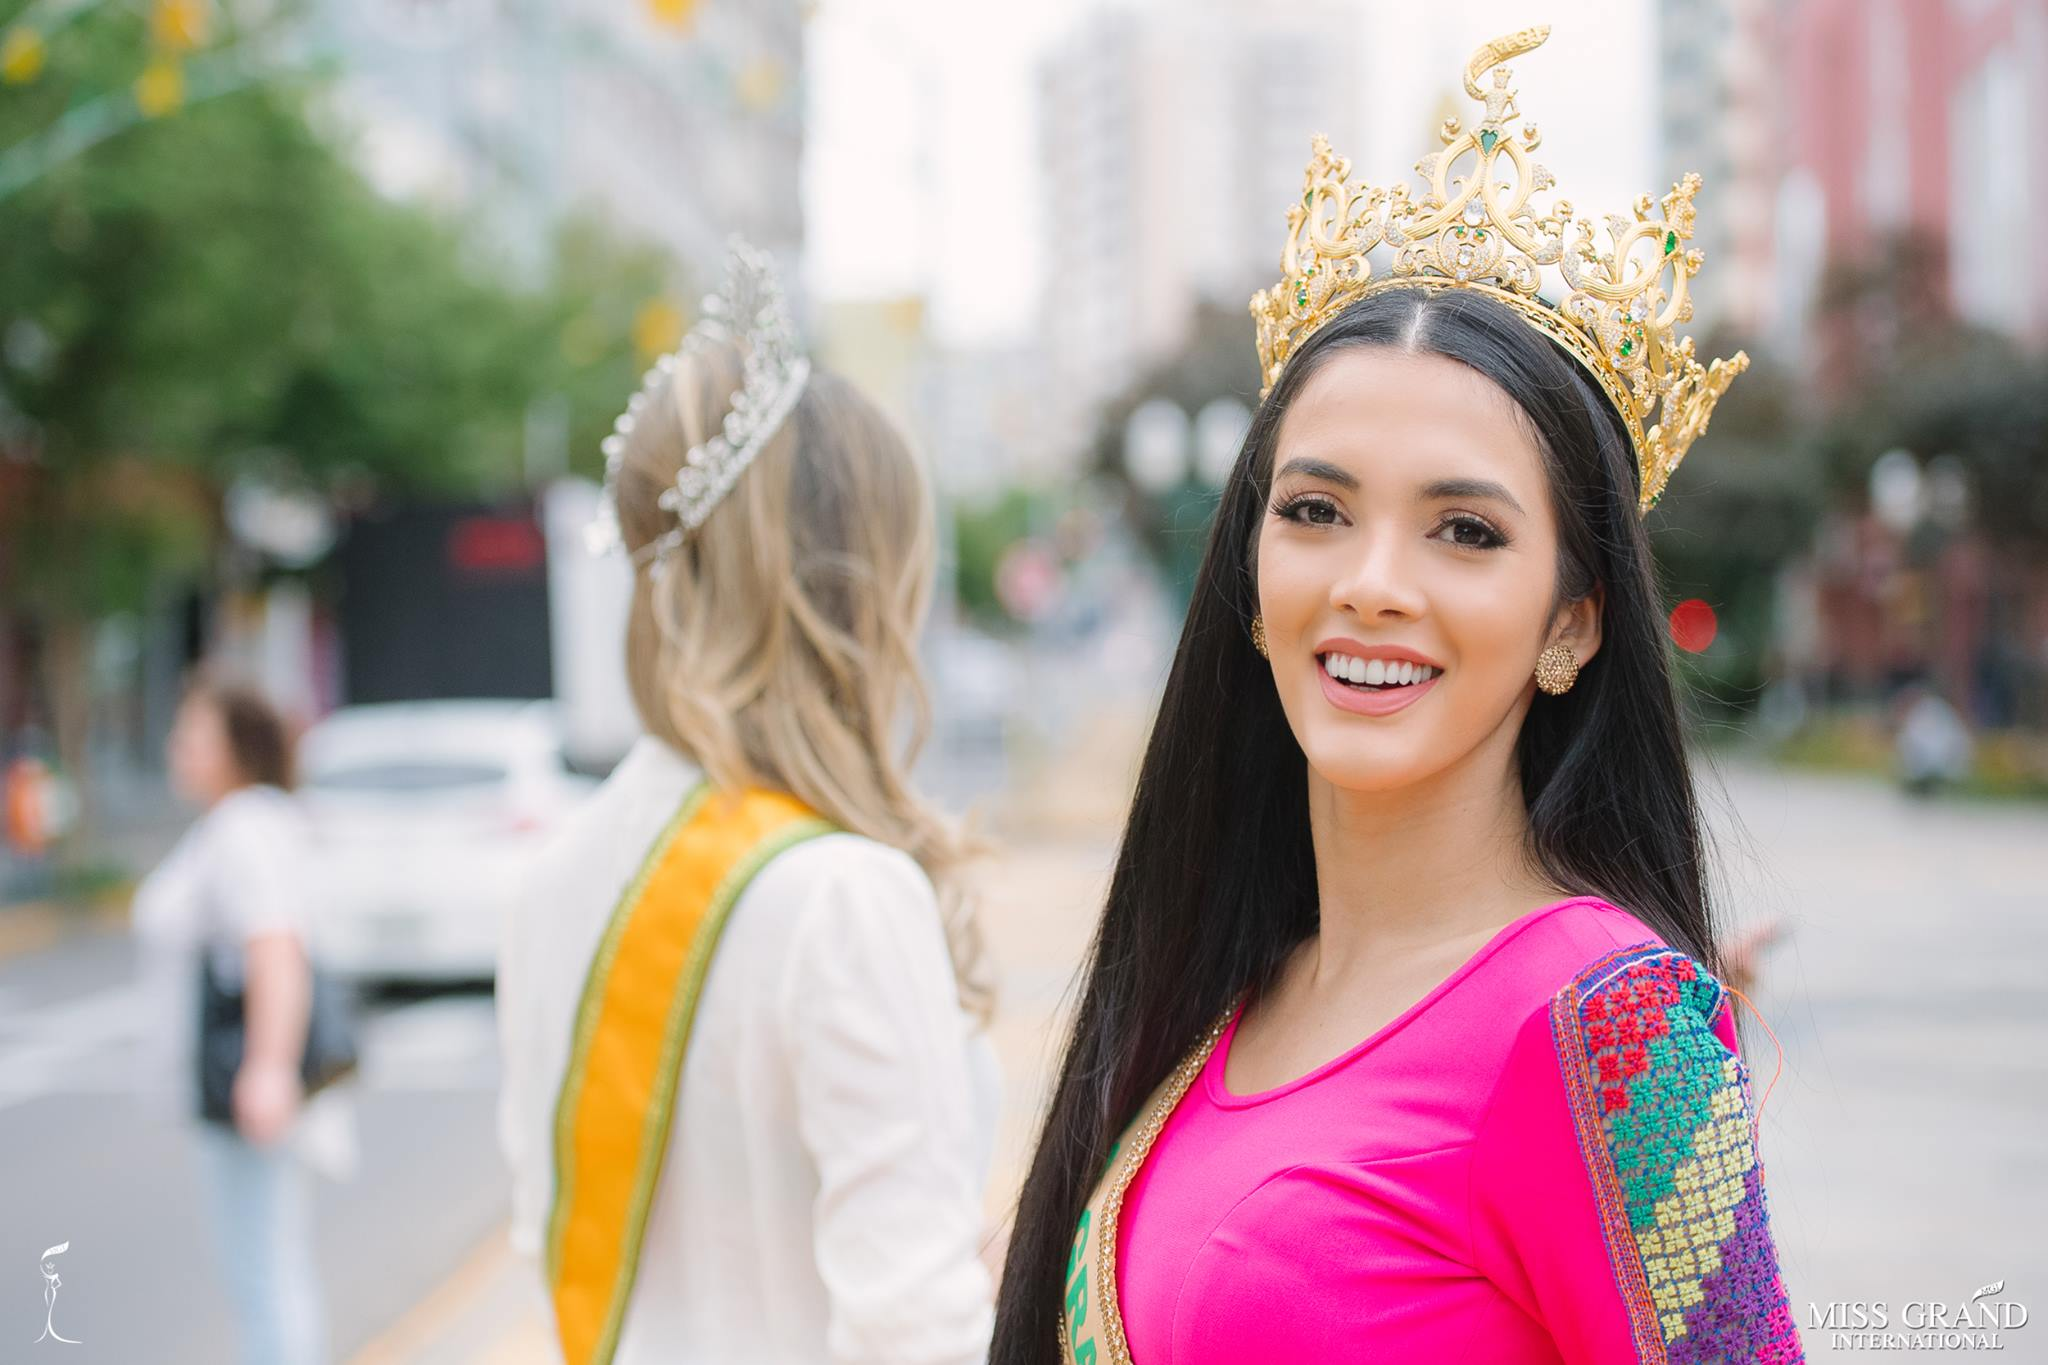 miss grand international 2018 visitando brasil para assistir a final de miss grand brasil 2019. Gciy5gkx